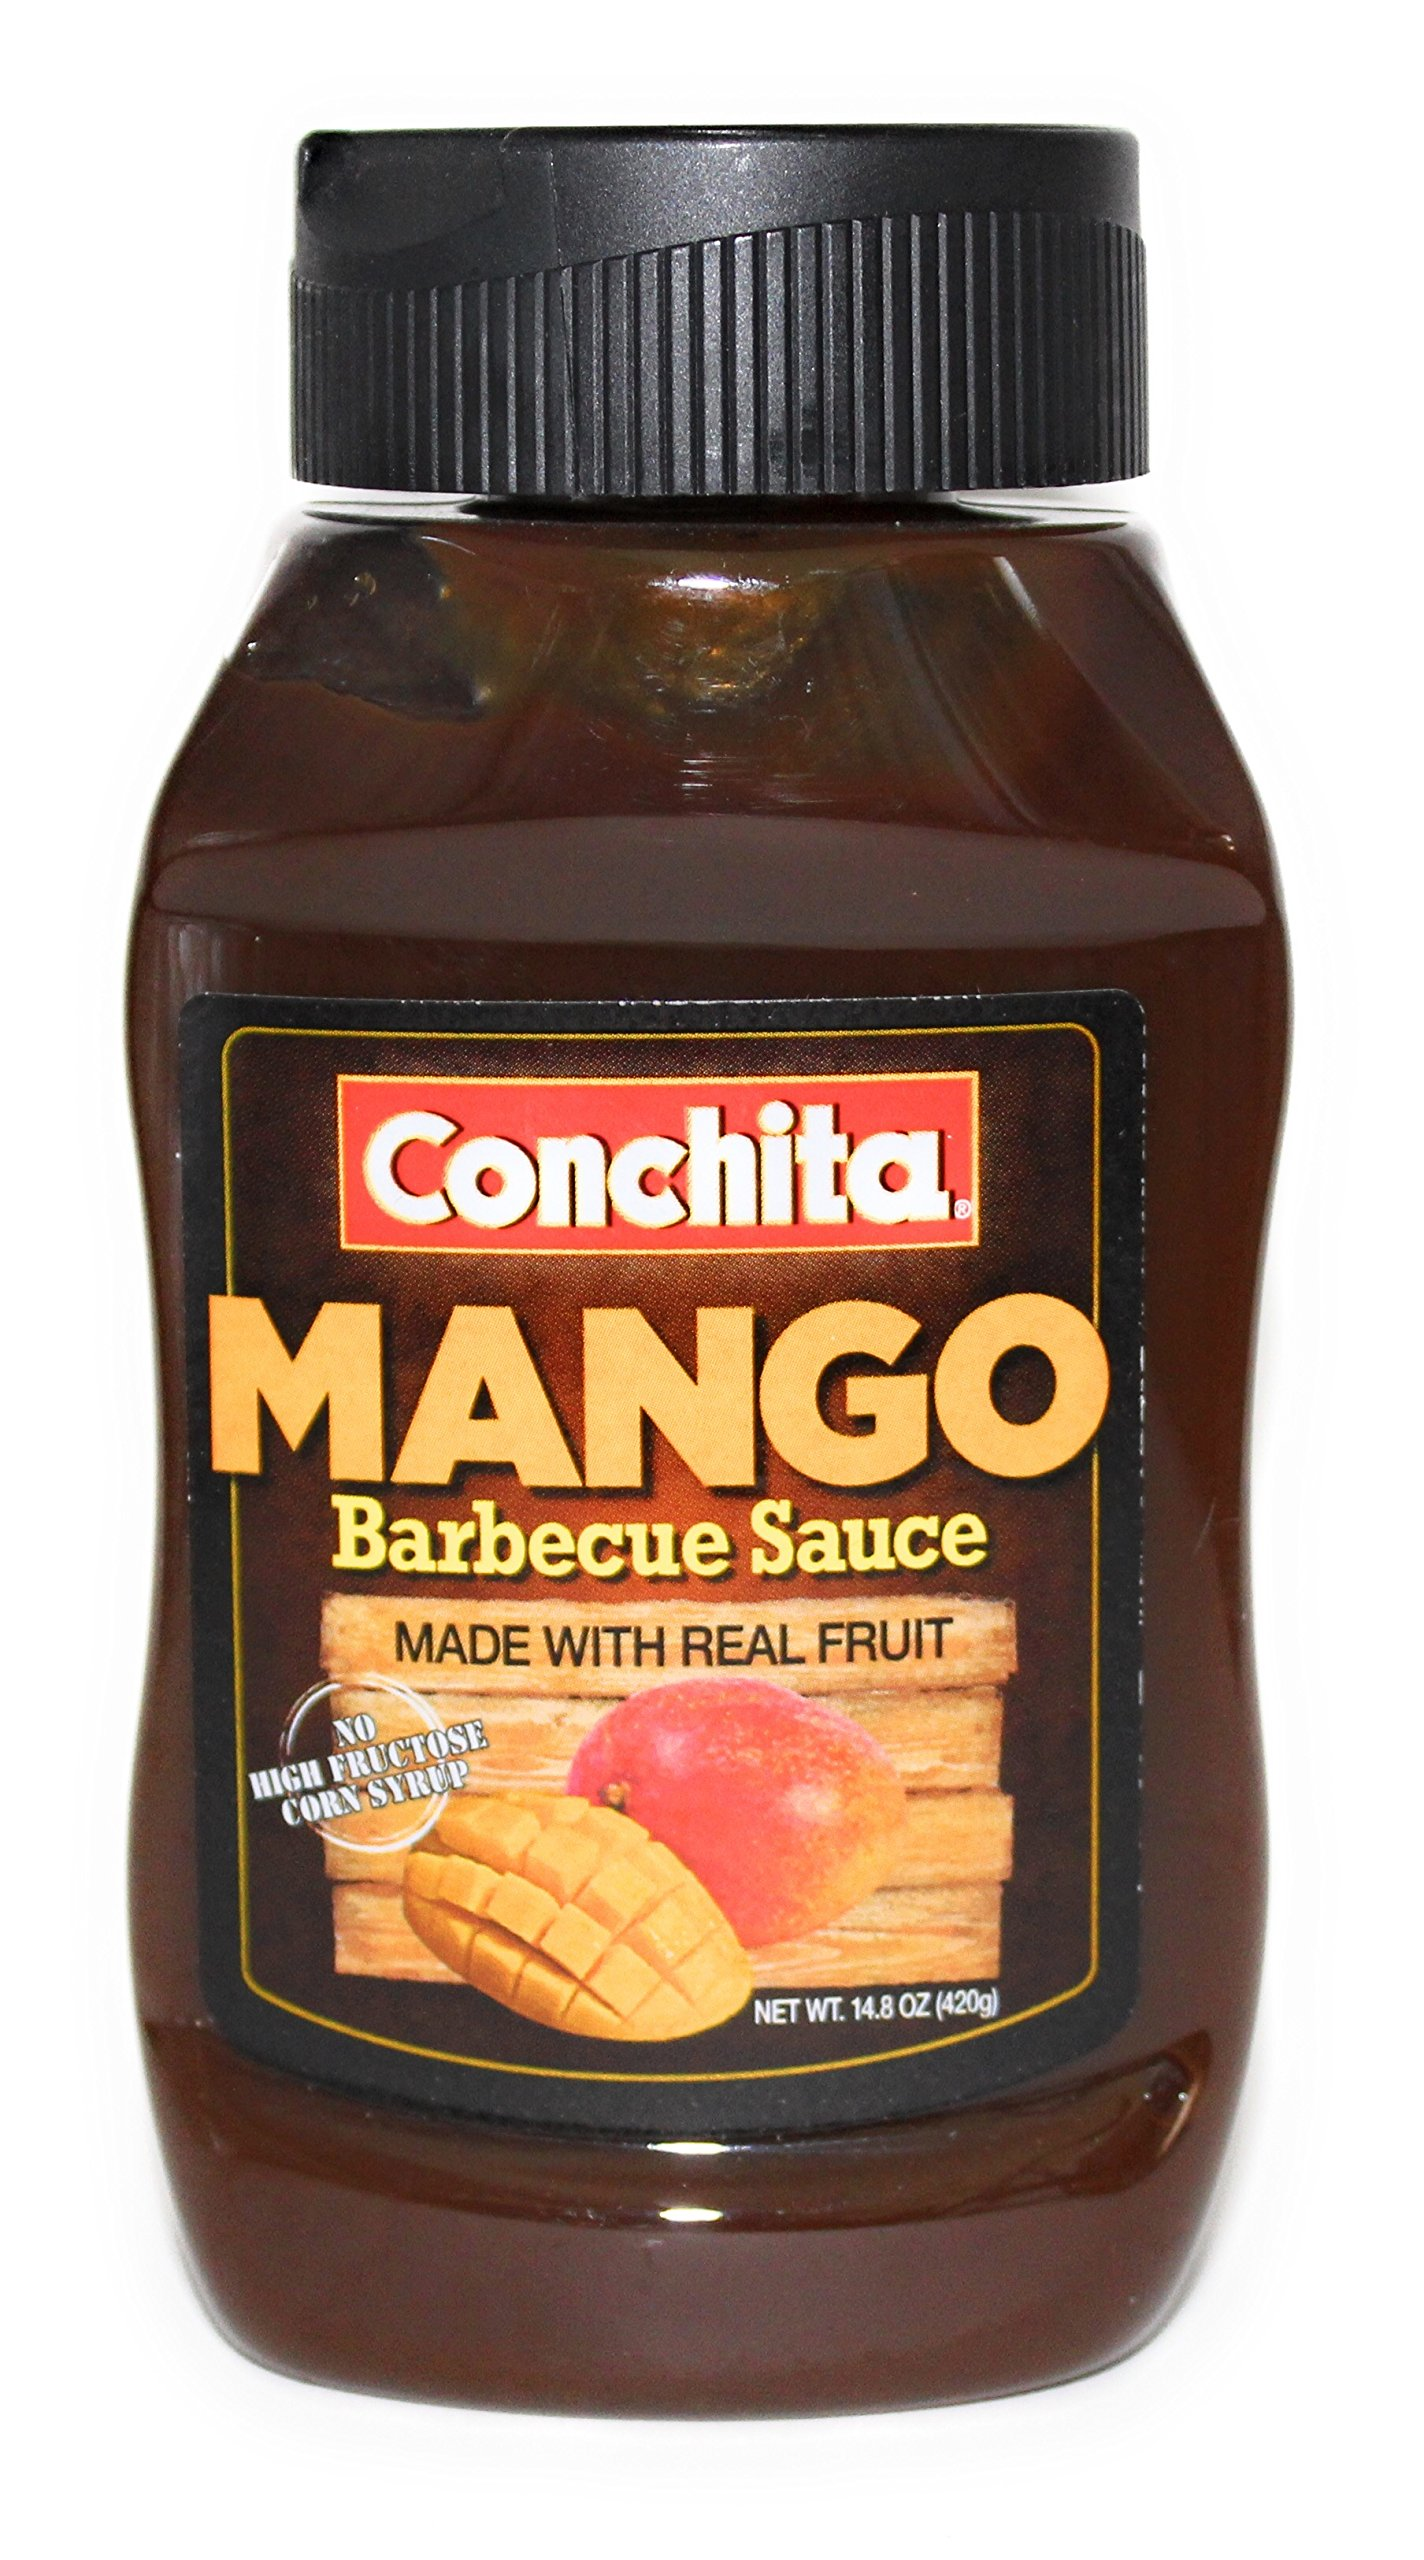 Mango BBQ Sauce | Conchita | Made with Real Fruit | Barbecue & Marinade | 14.8 Oz by Conchita (Image #1)